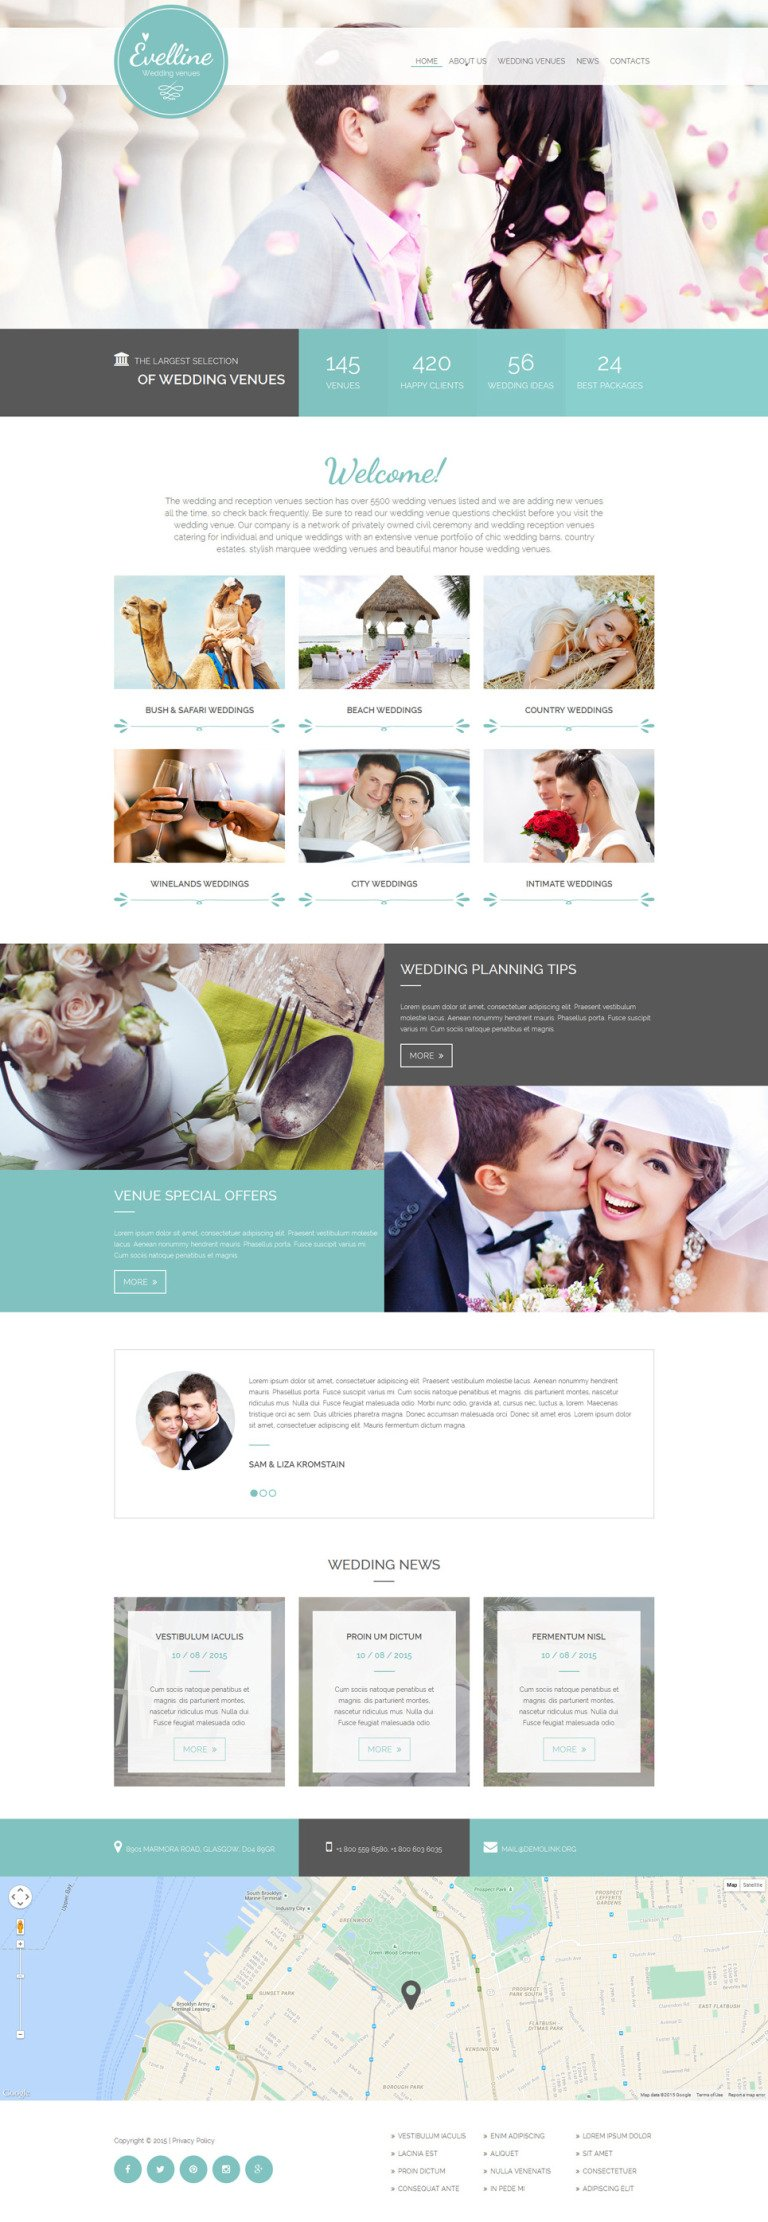 Evelline Website Template New Screenshots BIG